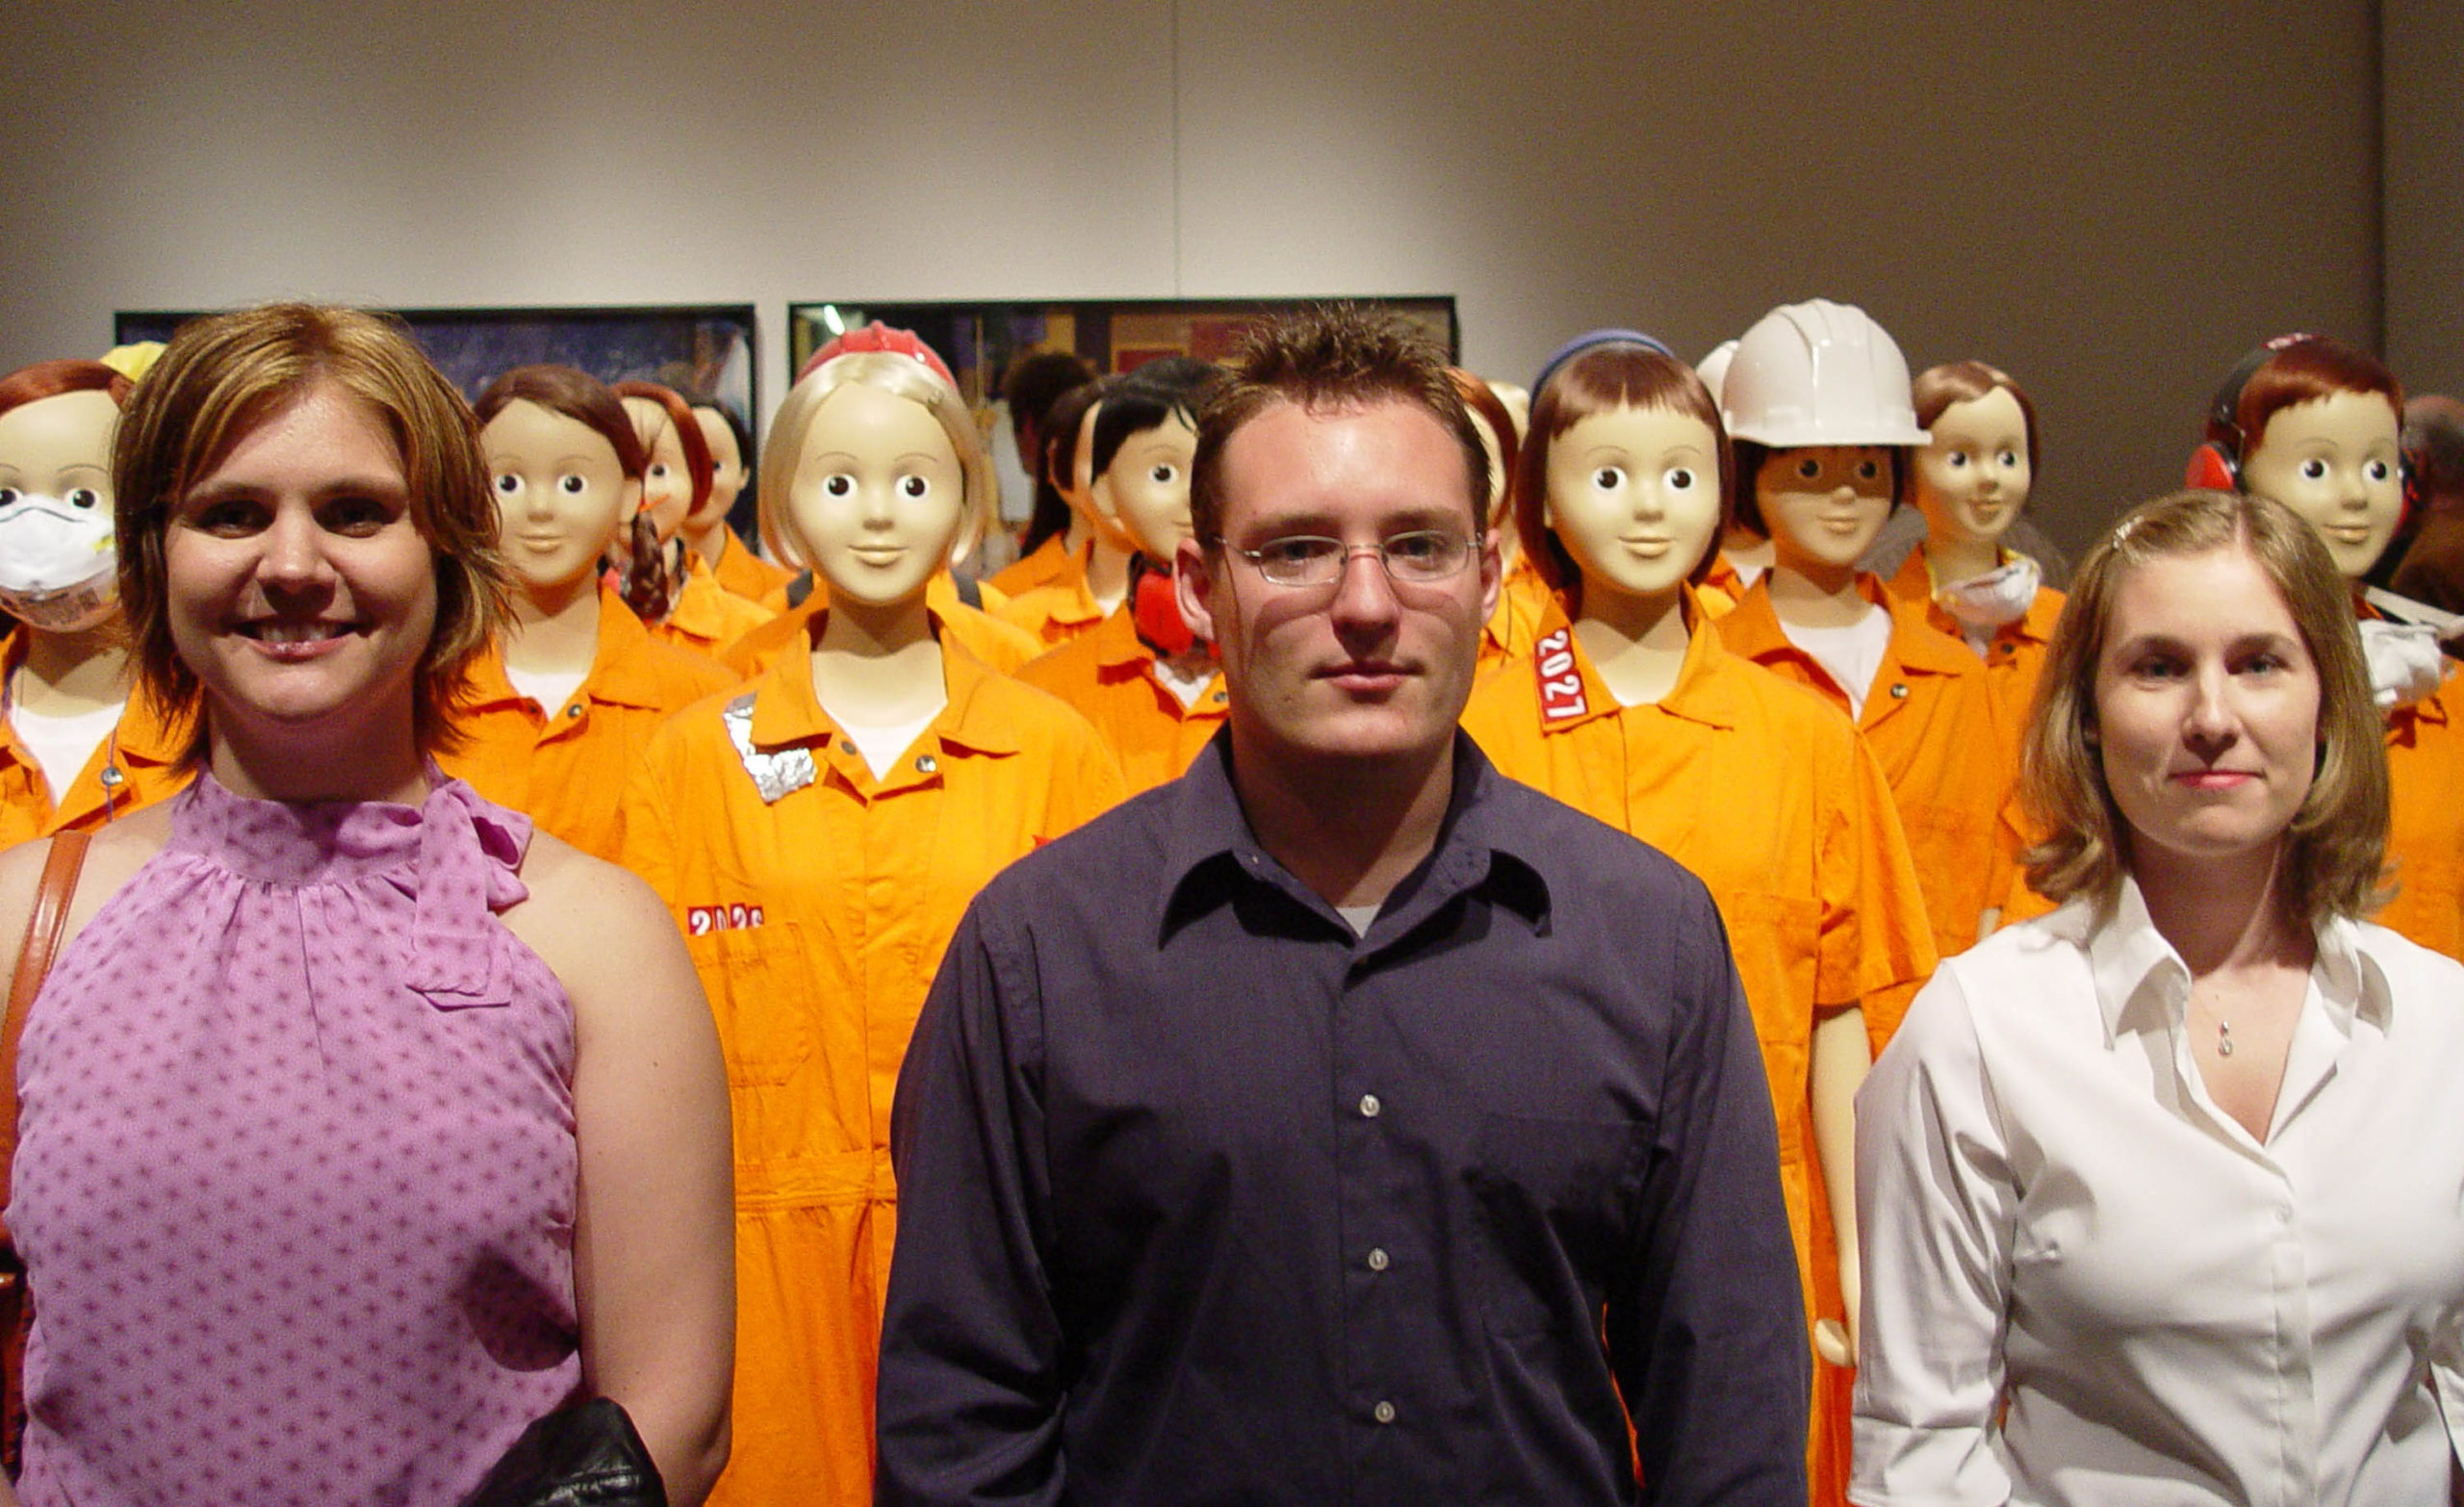 3 people in front of mannequins wearing orange jumpsuits